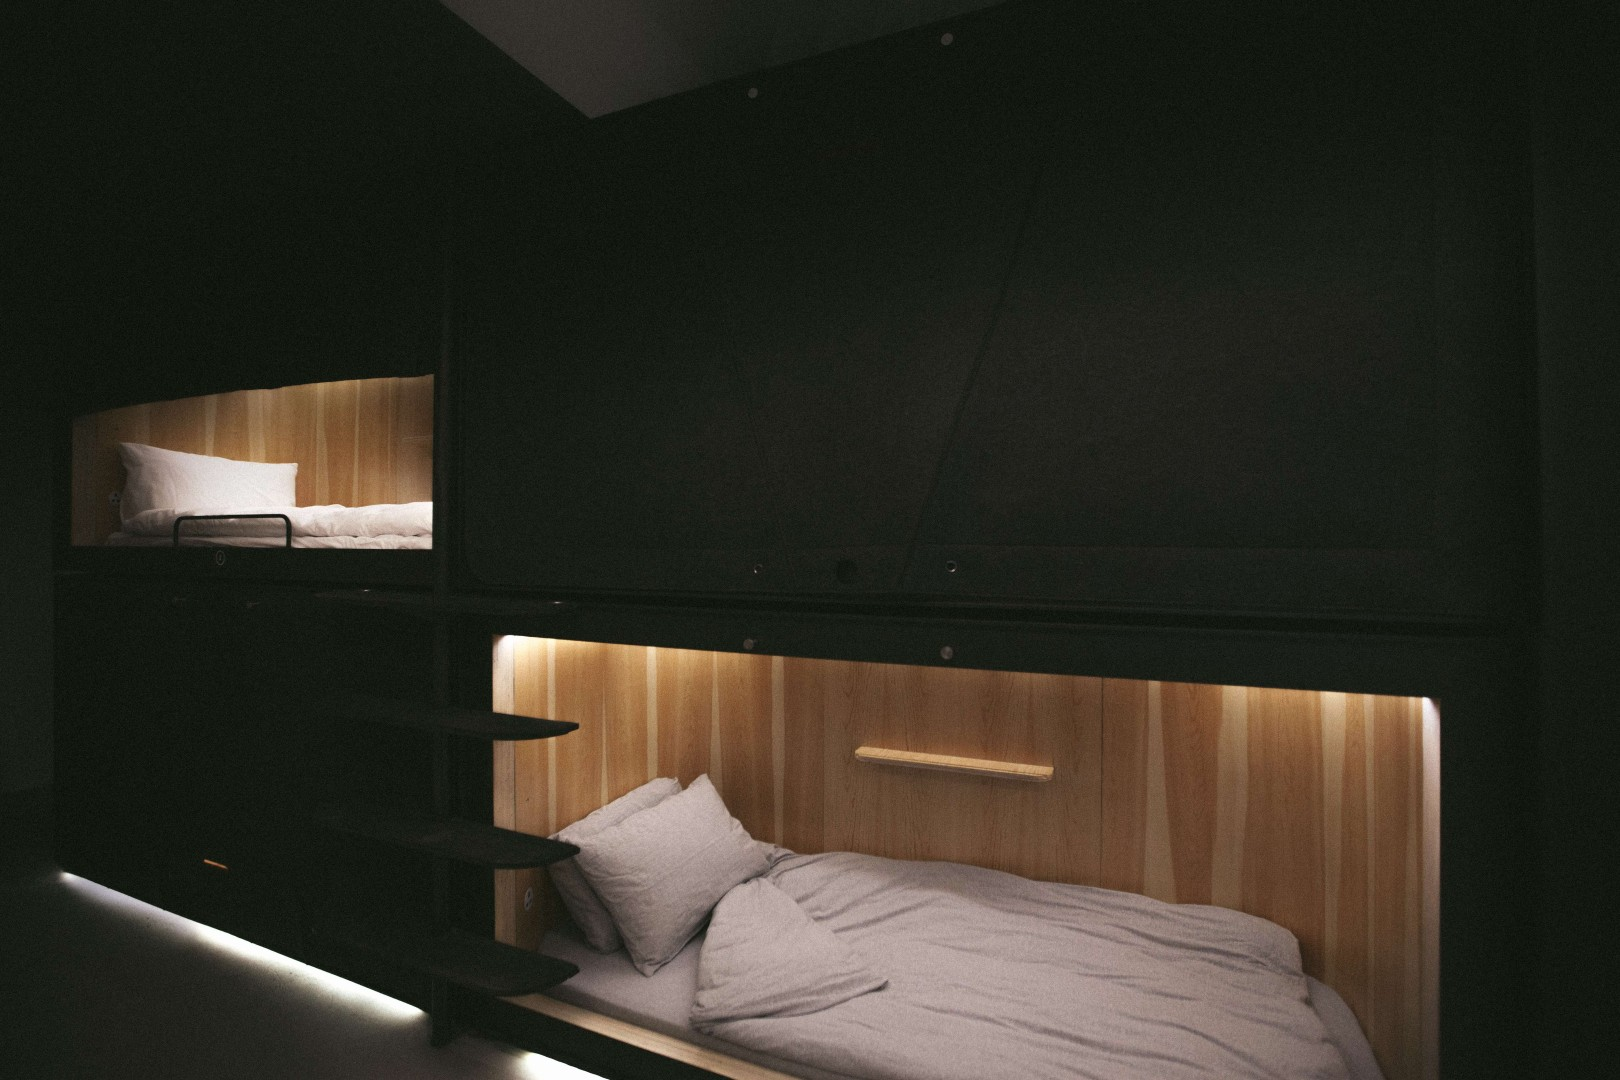 The place to go for a power nap or good night's sleep in Hong Kong